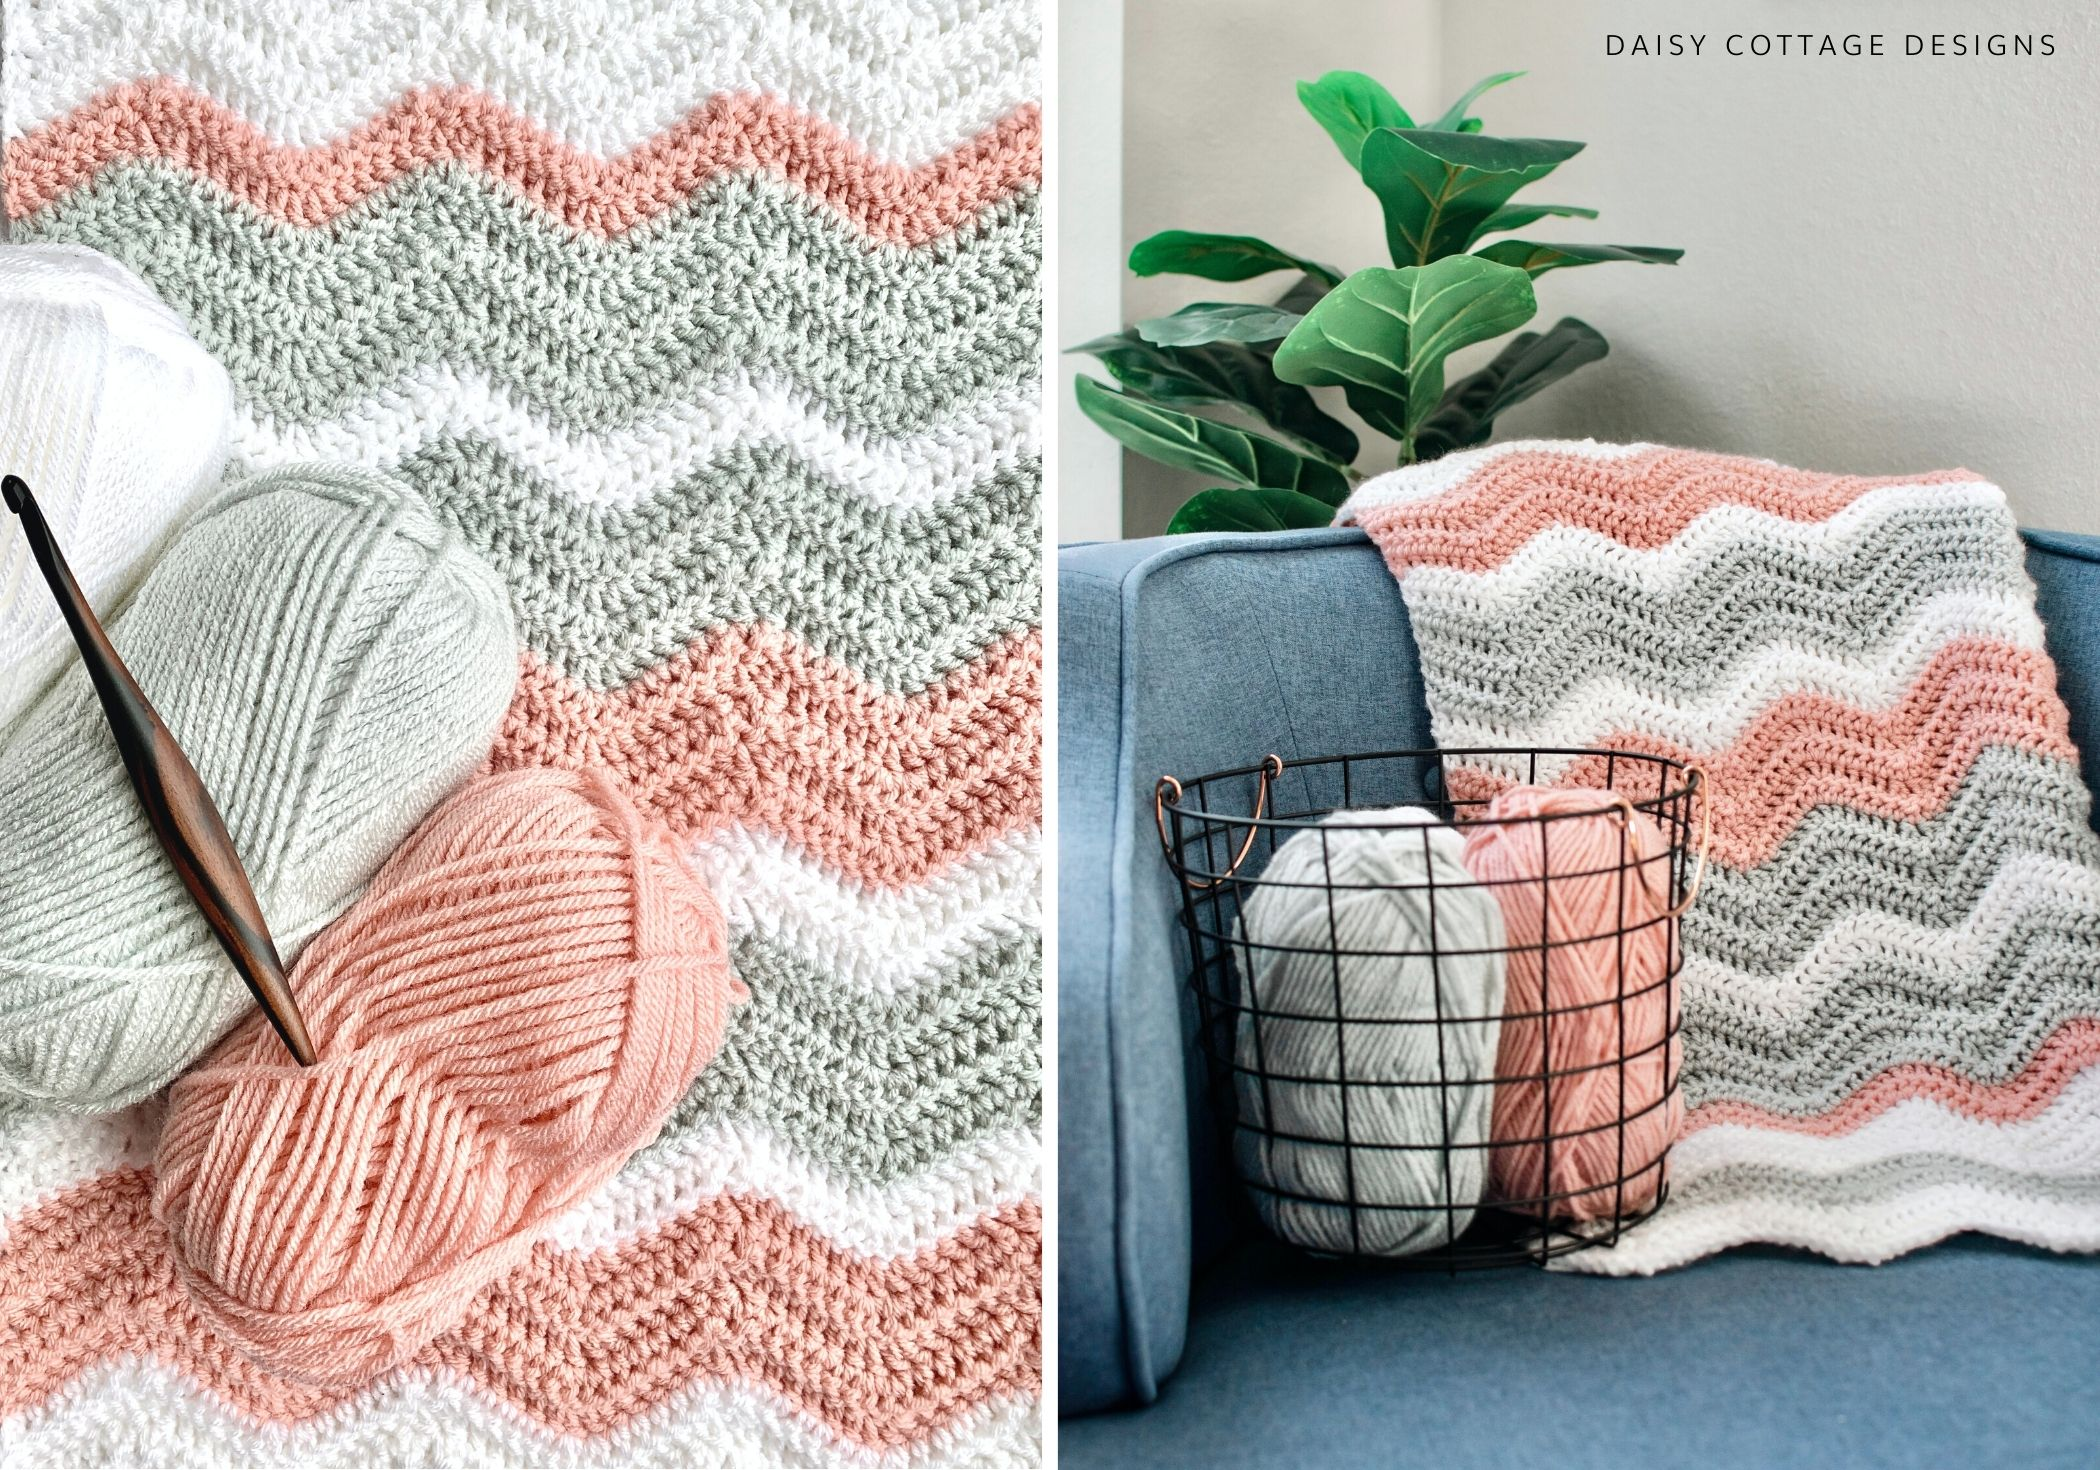 Free Crochet Baby Patterns For Blankets : Ripple Blanket Crochet Pattern - Daisy Cottage Designs